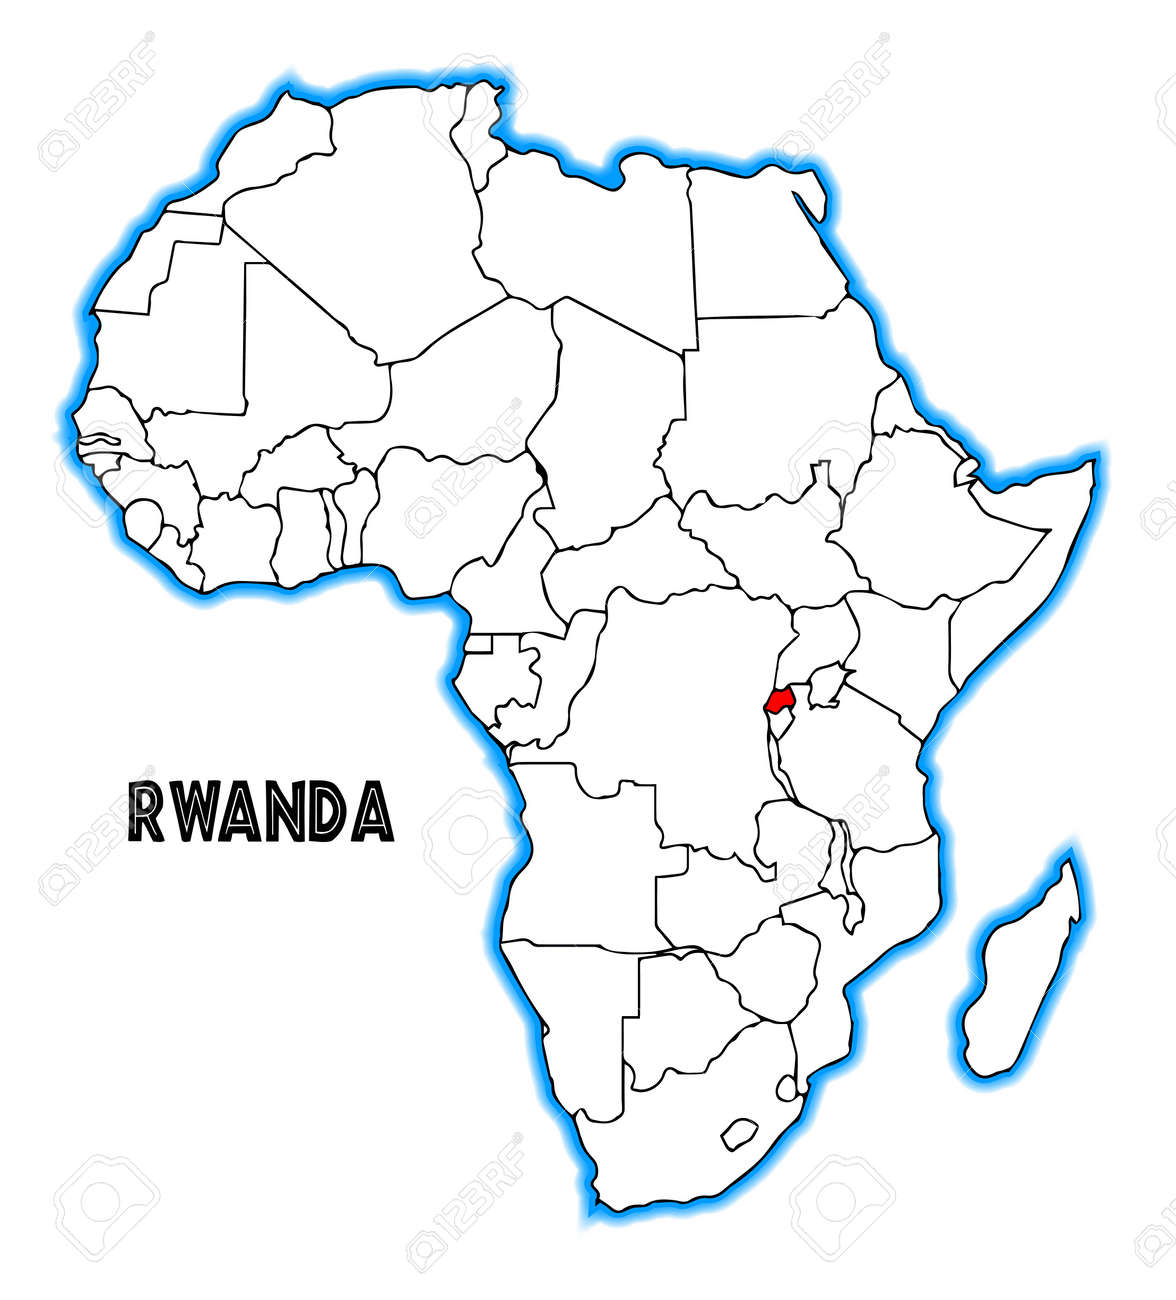 Rwanda Outline Inset Into A Map Of Africa Over A White Background